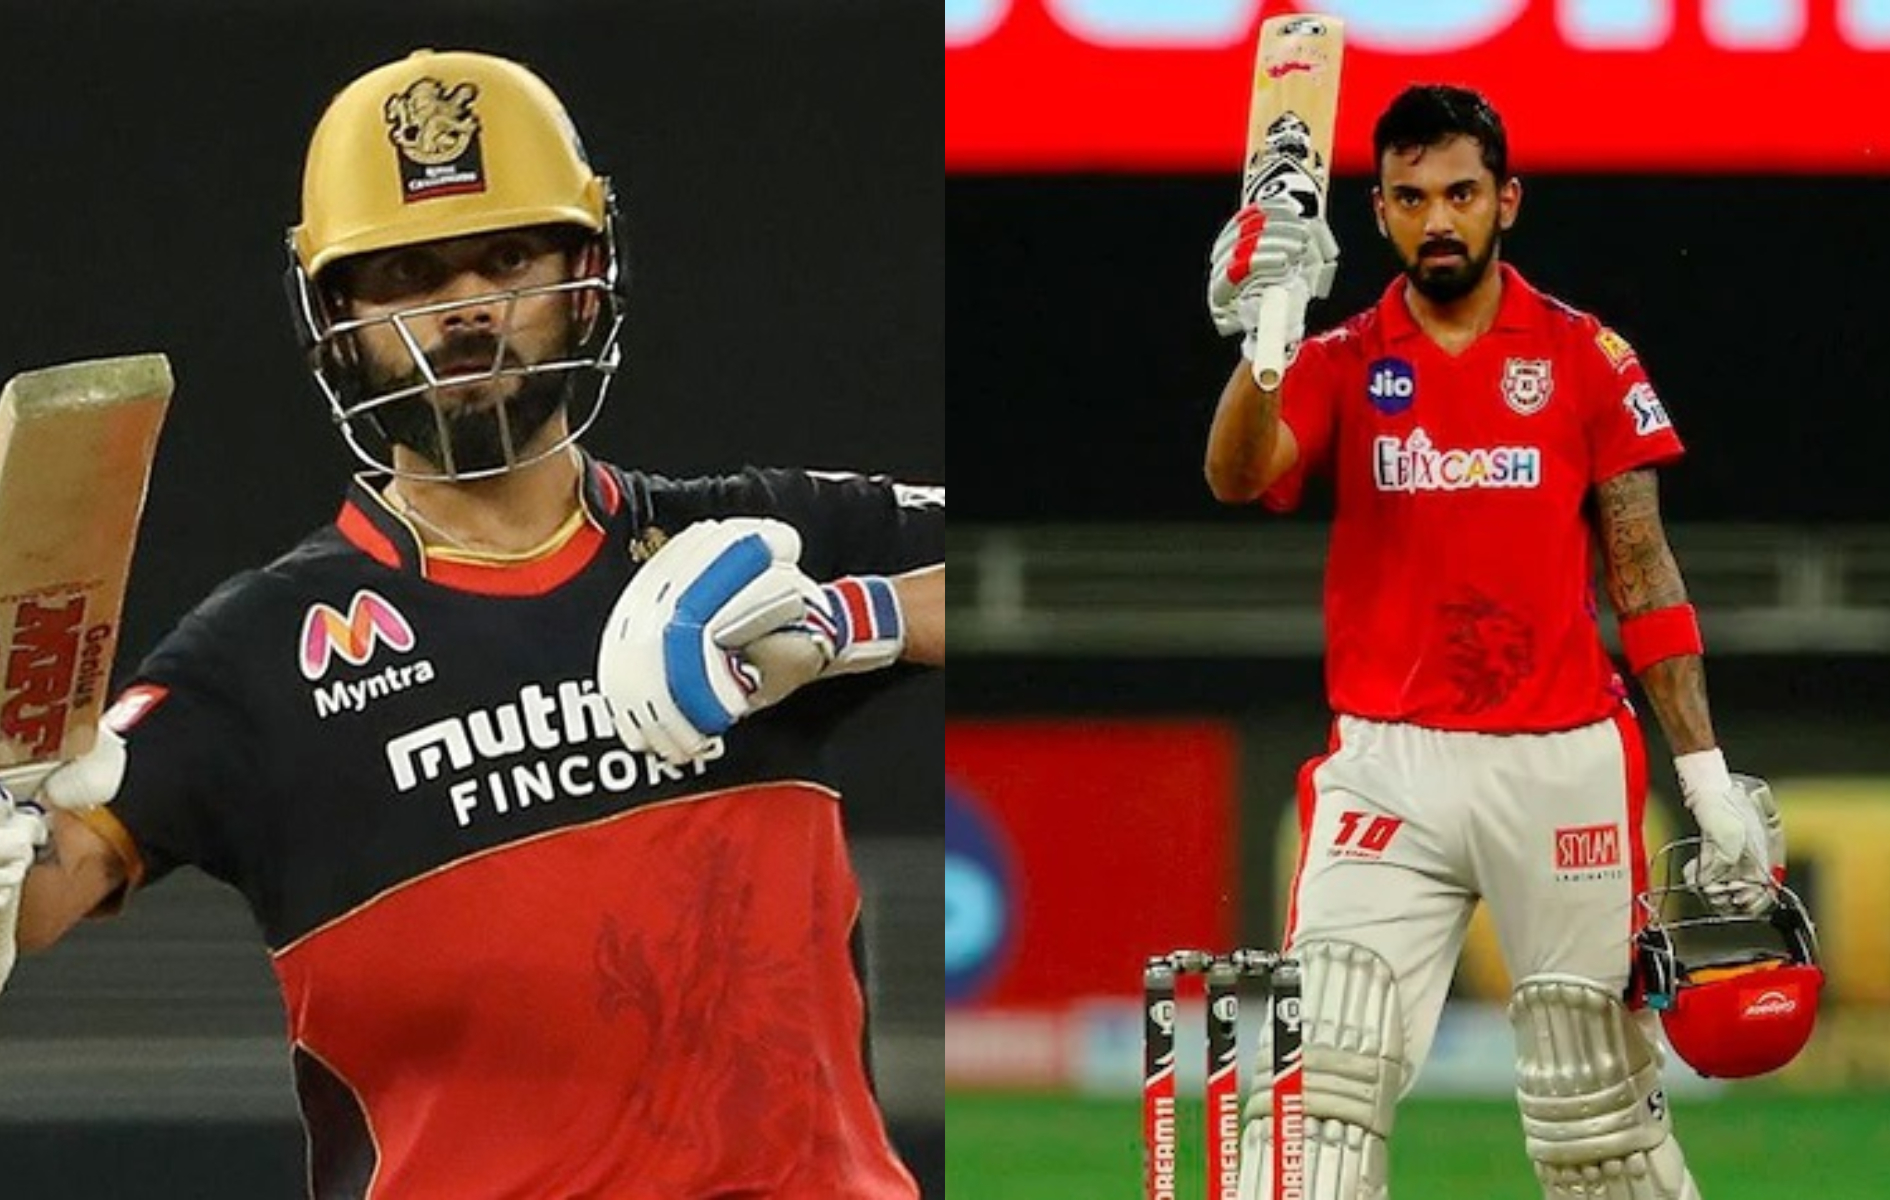 RCB is ranked 3rd in the points table, while KXIP are at the bottom | BCCI/IPL